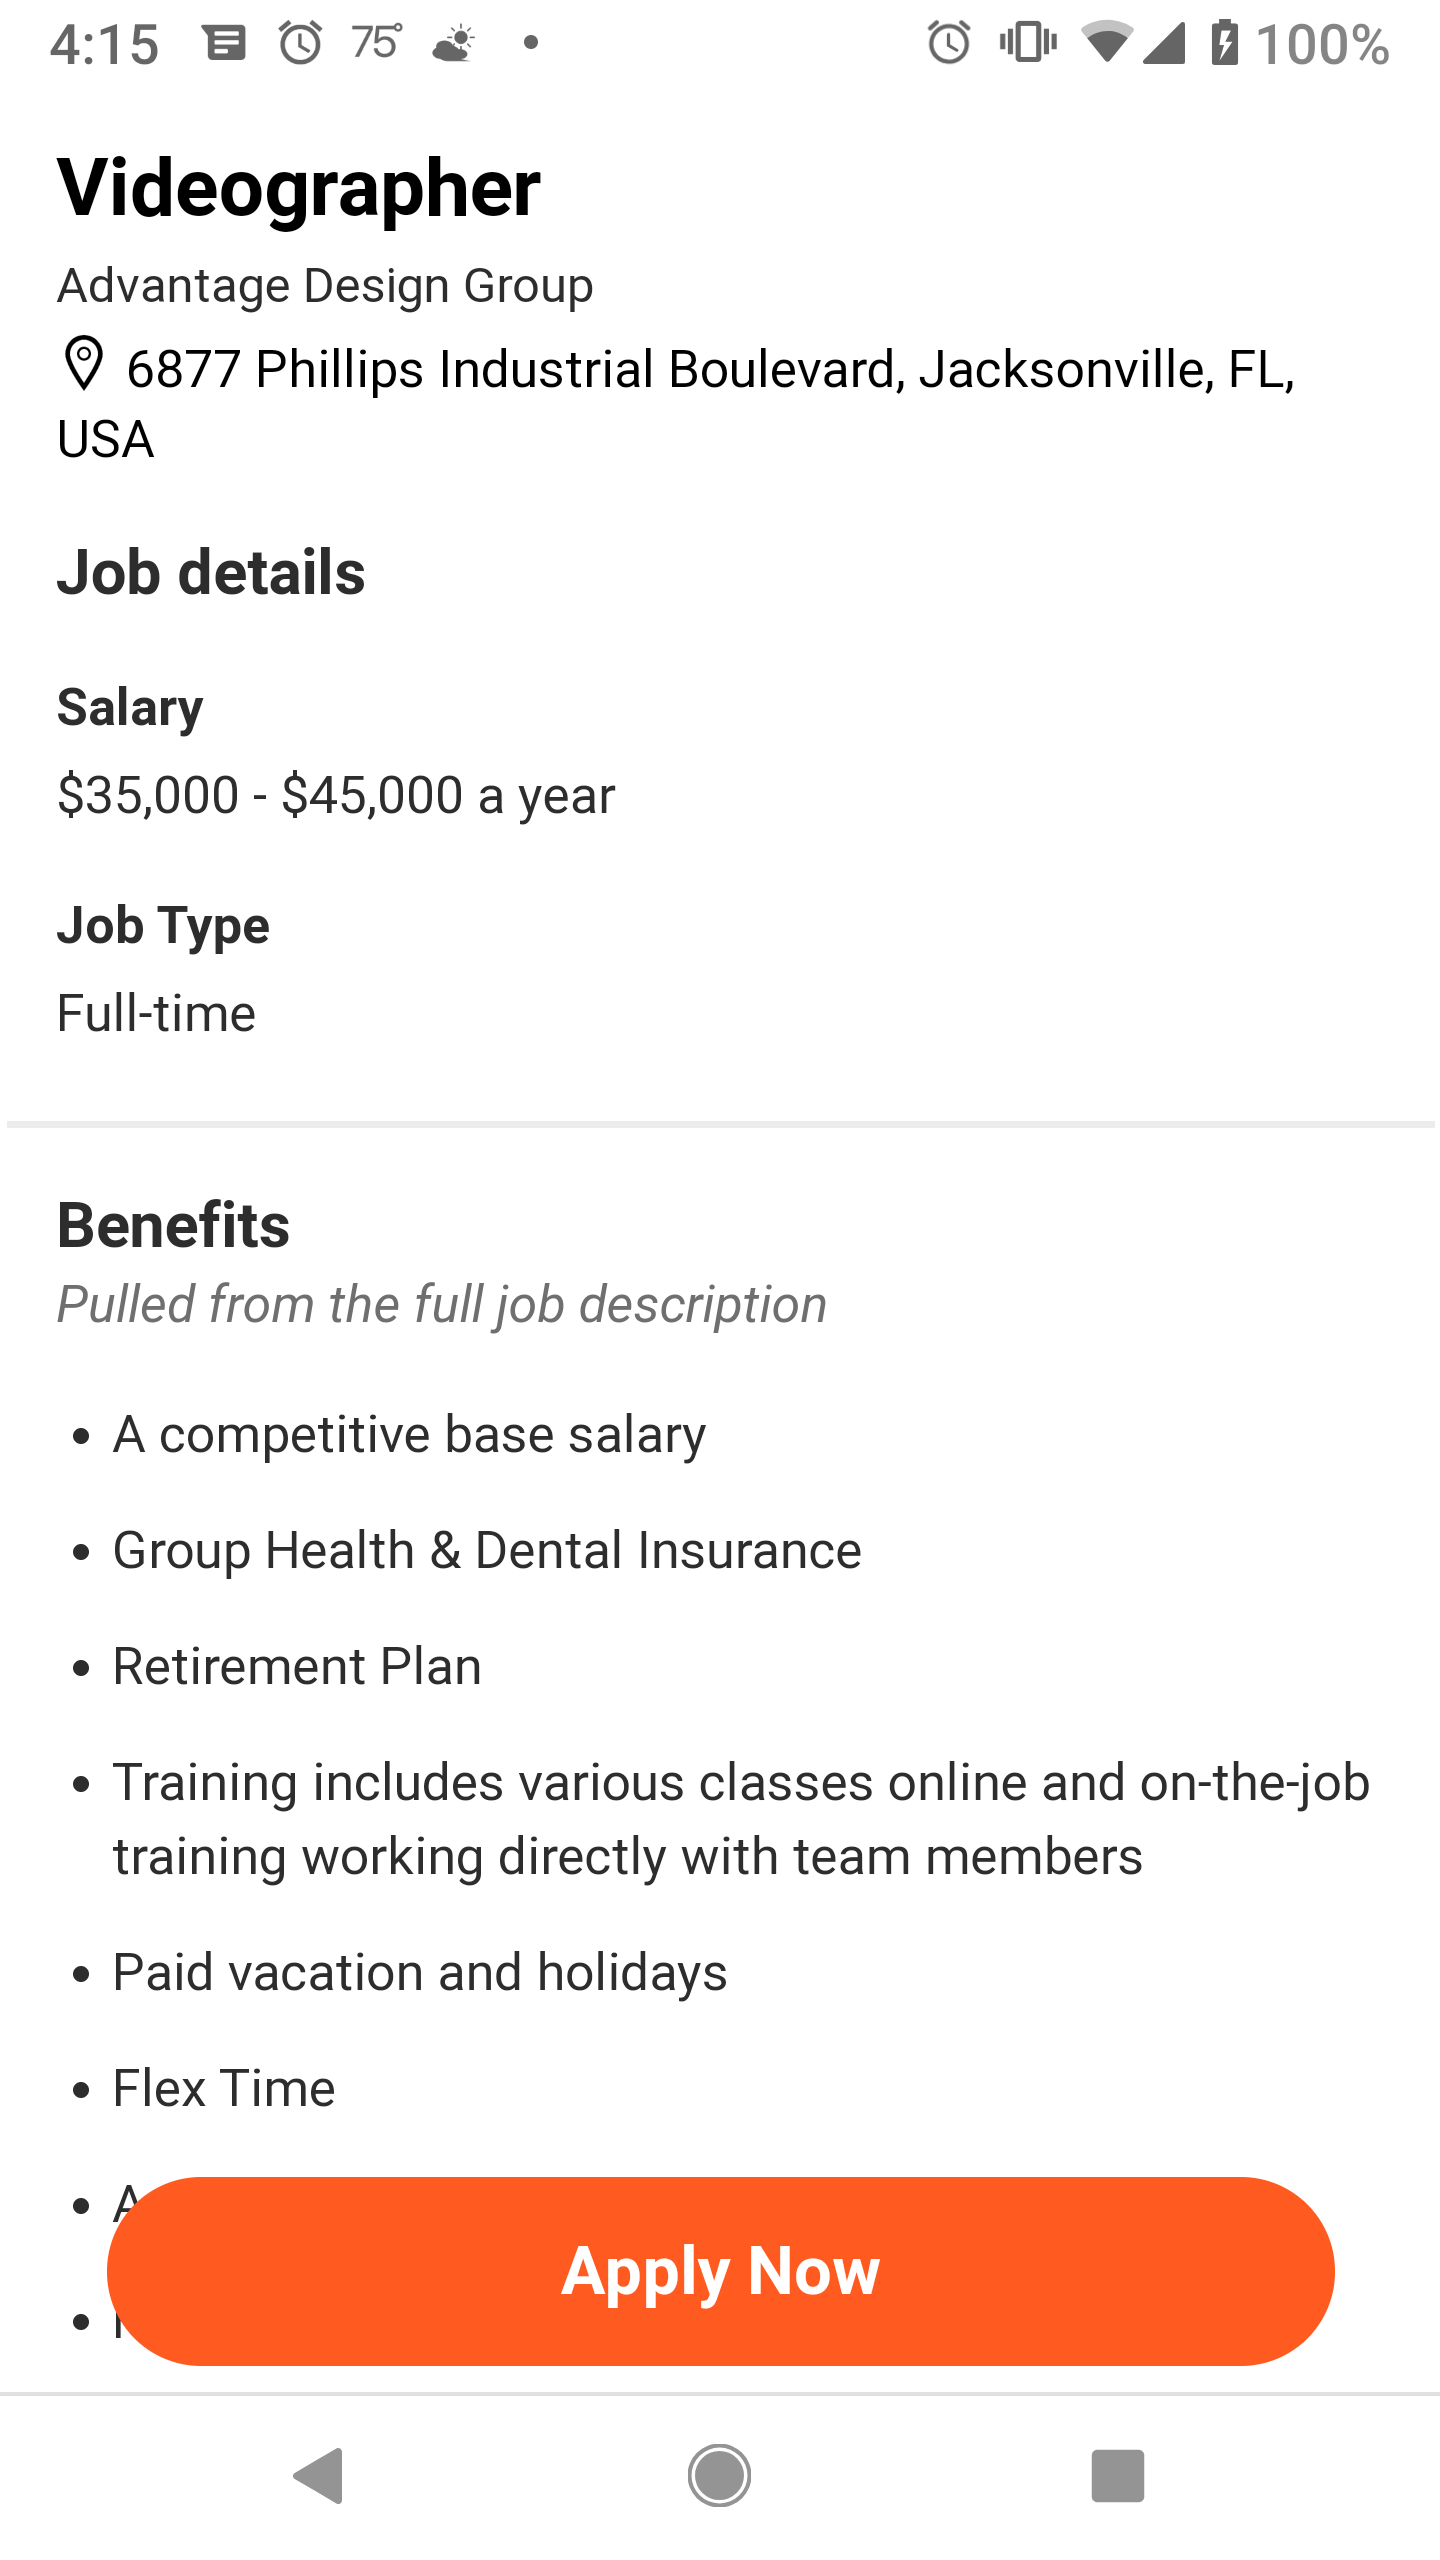 Is This Really A Competitive Base Salary For A Videographer